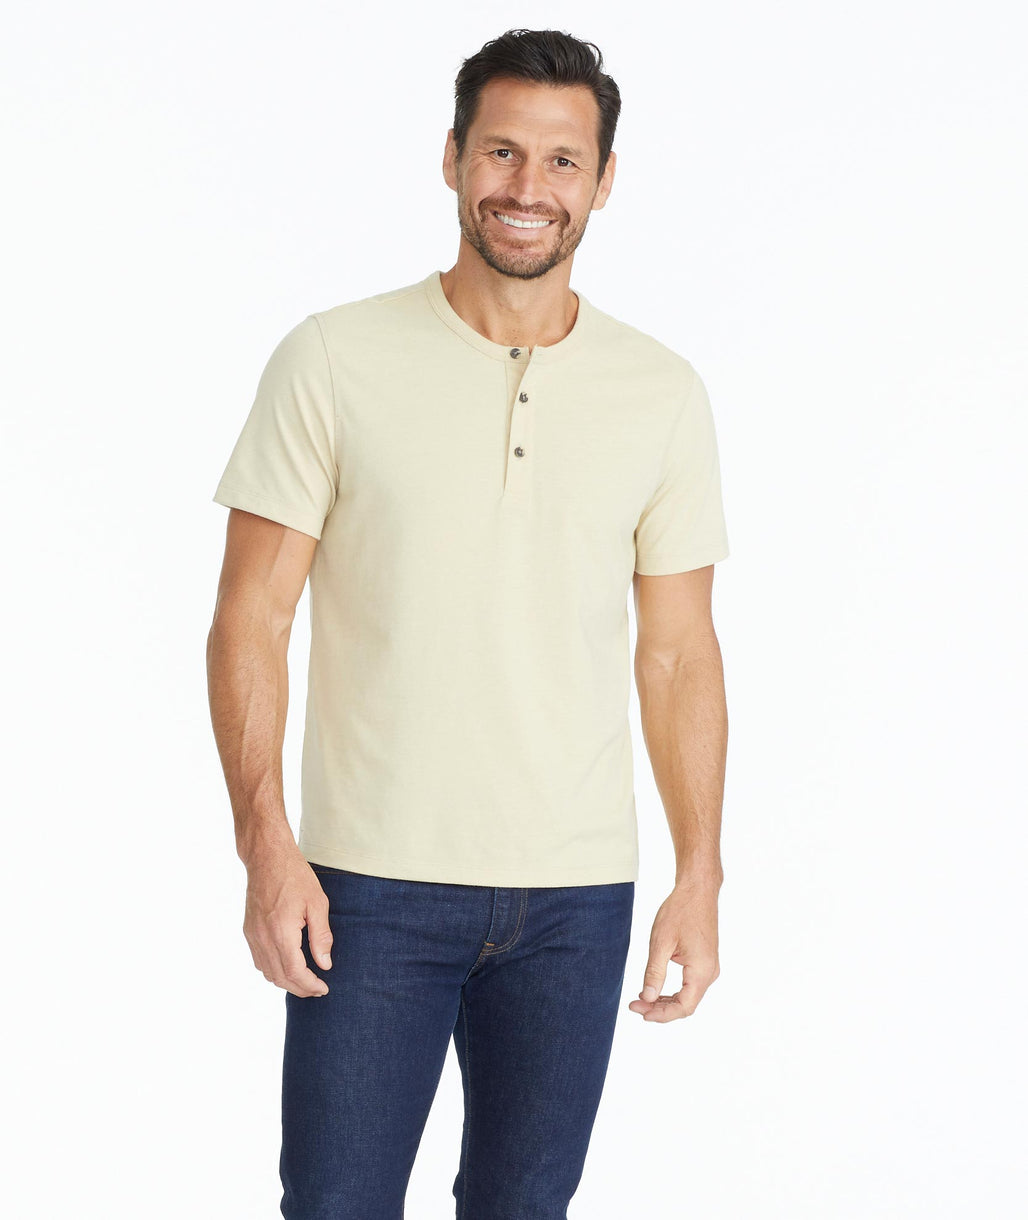 Model wearing a Tan Jericho - Pale Khaki